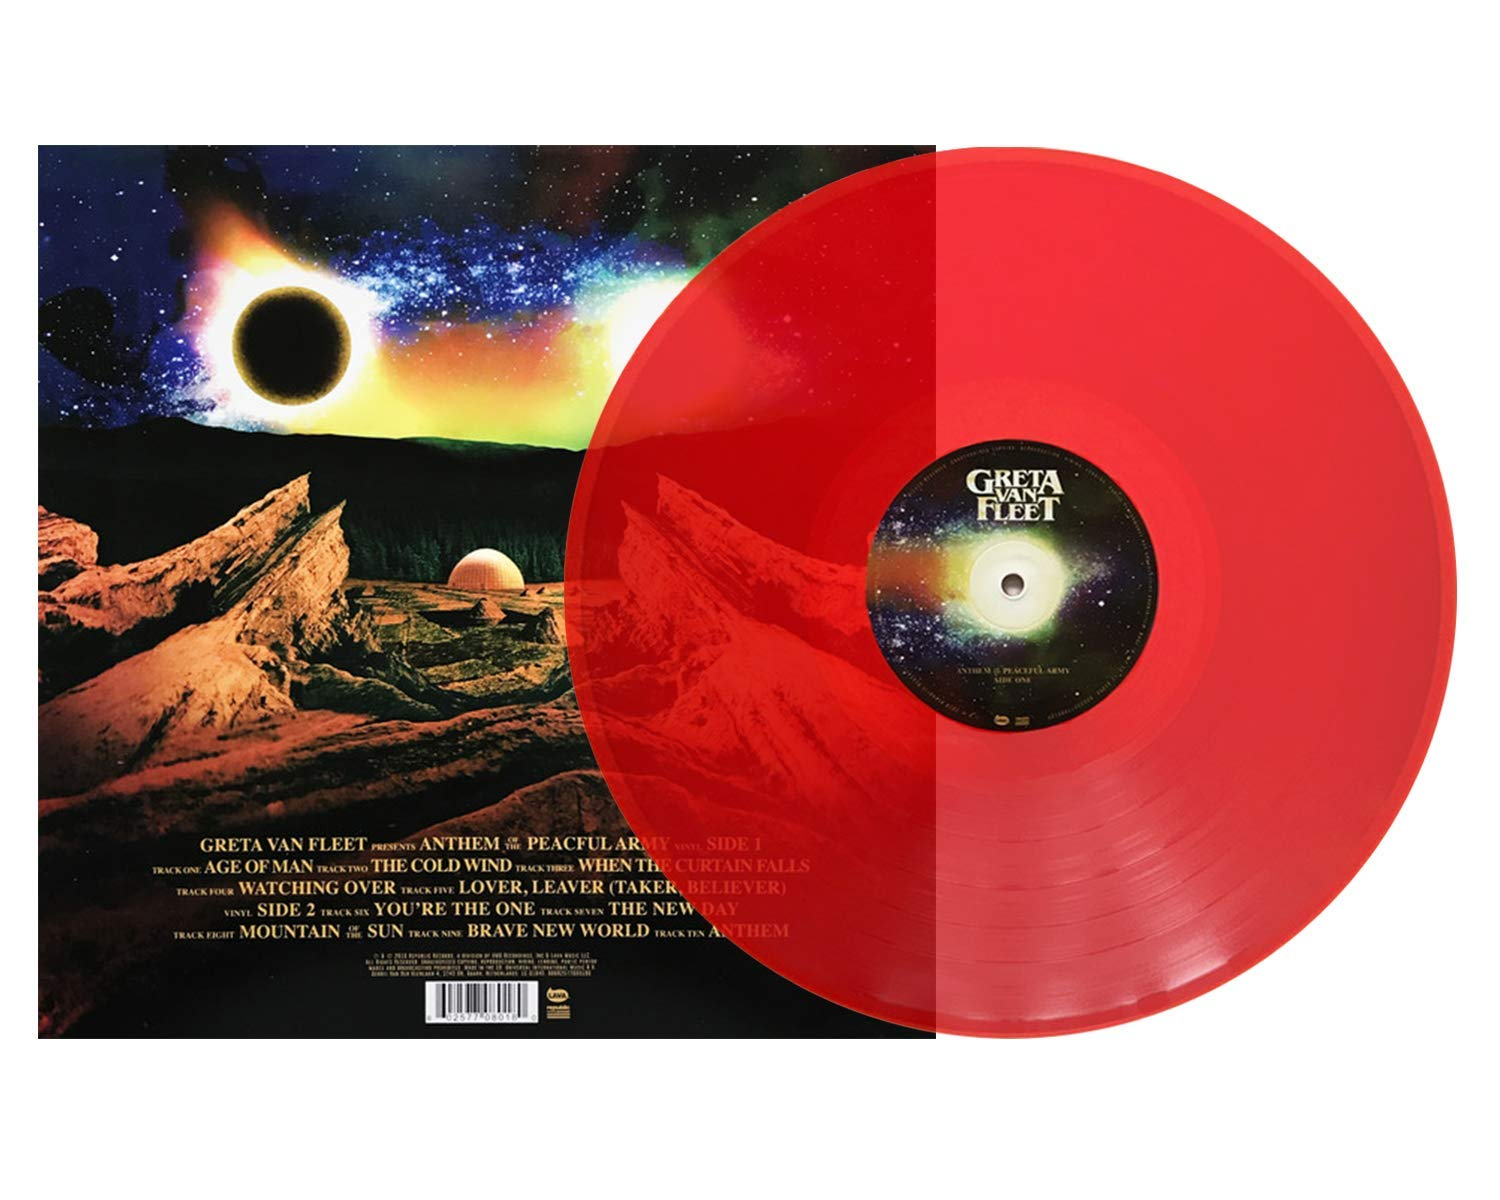 Greta Van Fleet - Anthem of the Peaceful Army Exclusive Limited Edition LP Translucent Red Vinyl